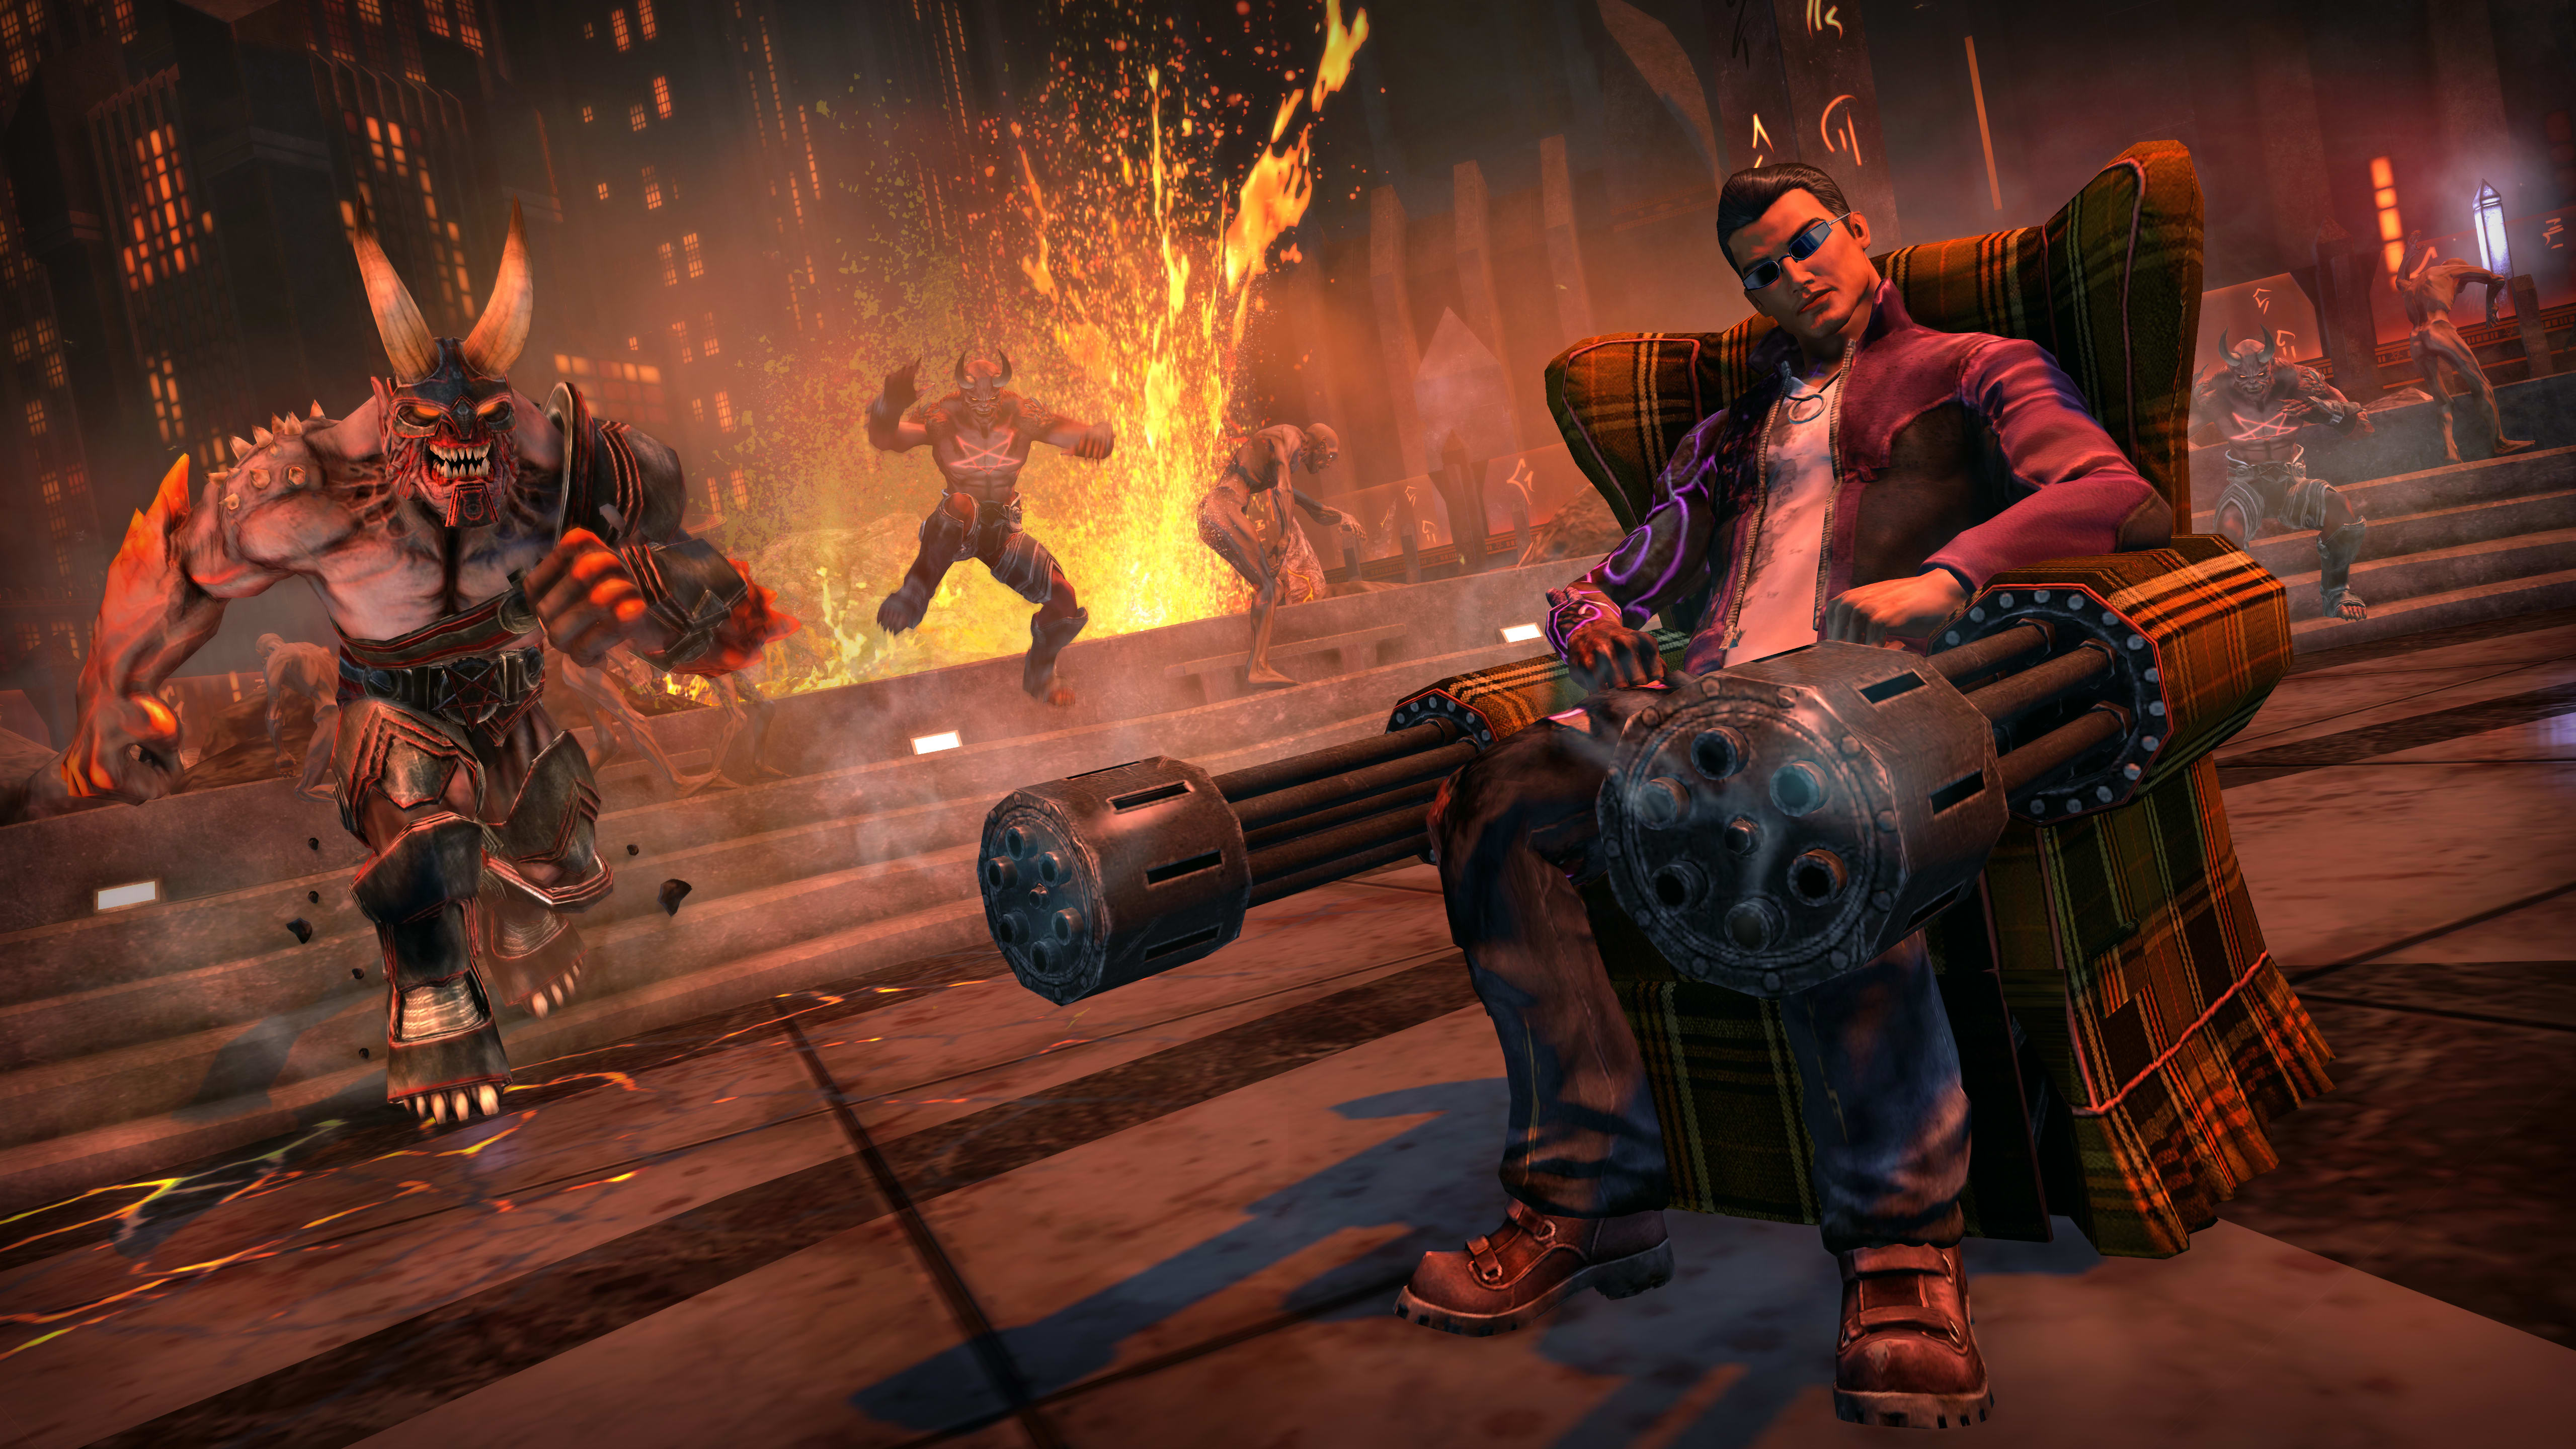 Gat Gear - Saints Row IV Re-Elected & Gat Out of Hell